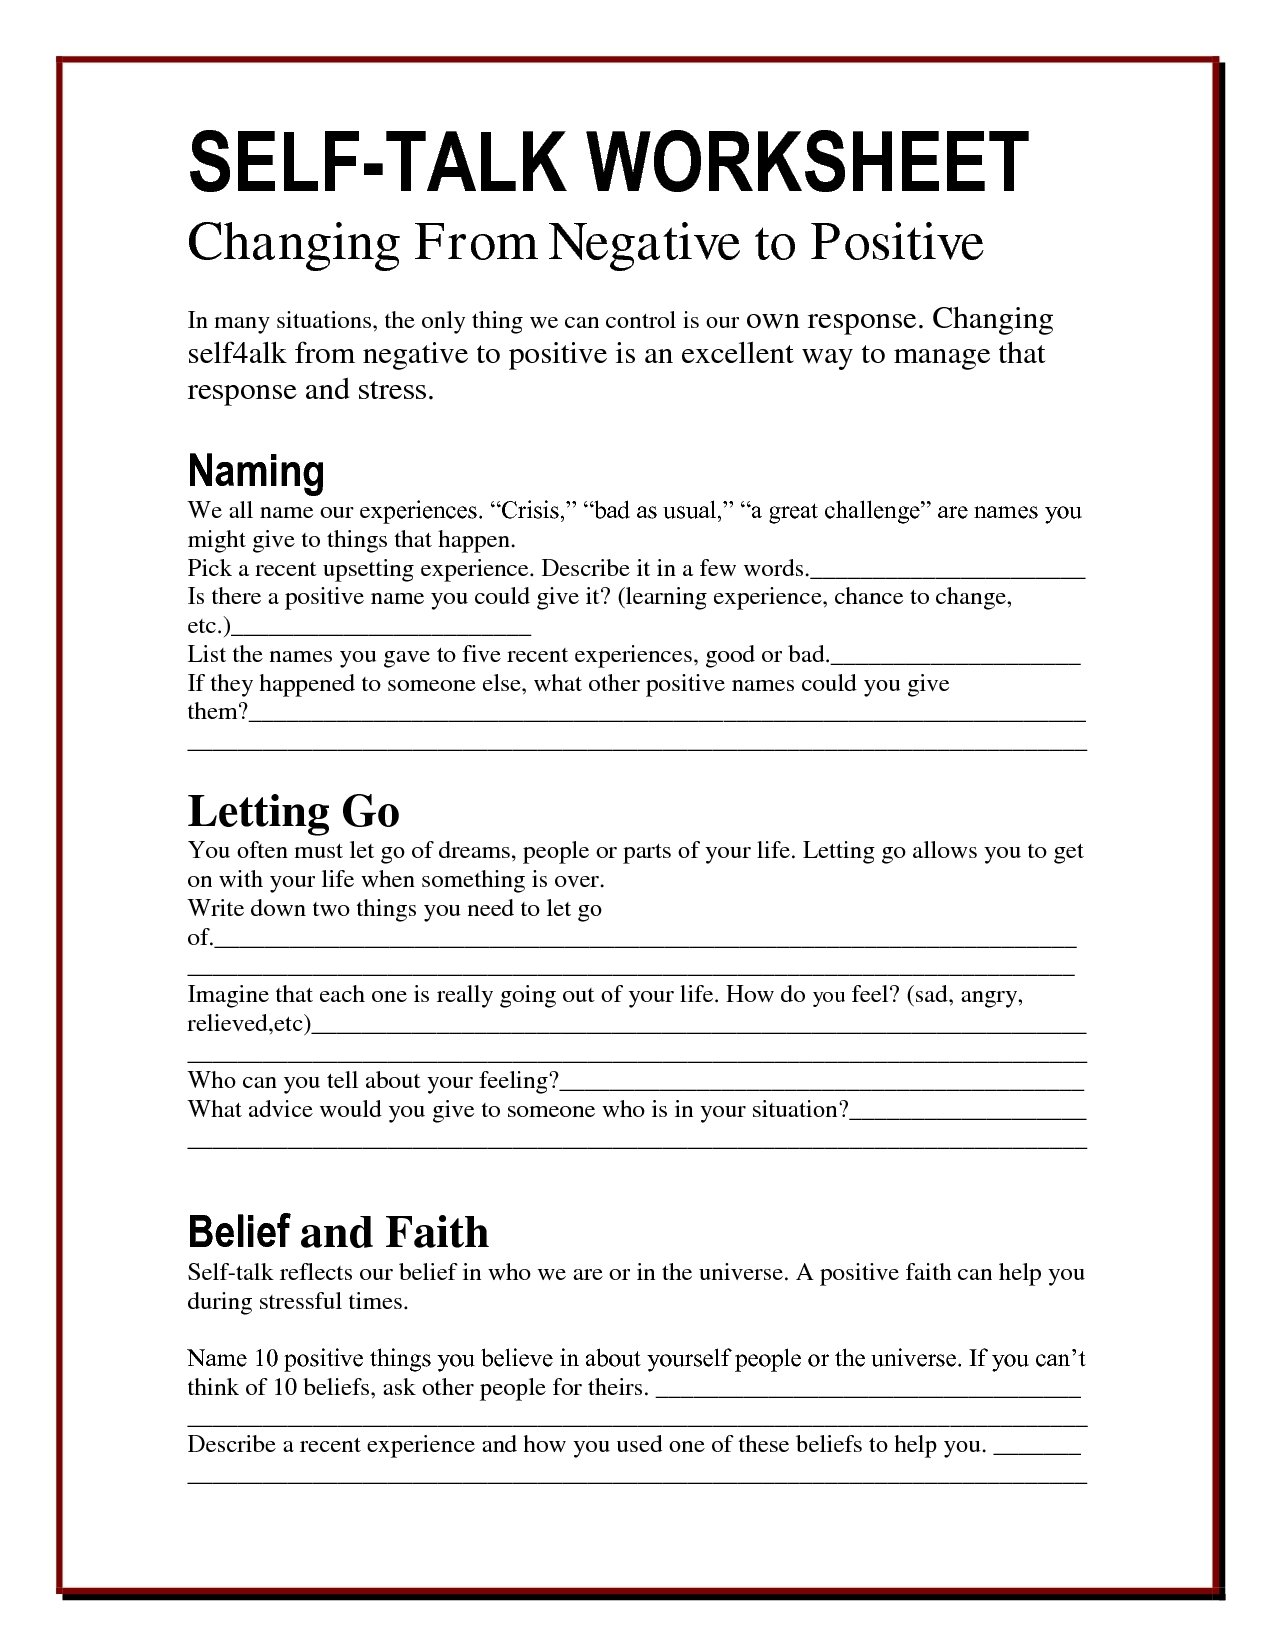 10 Unique Group Ideas For Mental Health mental health group worksheets worksheets for all download and 2020